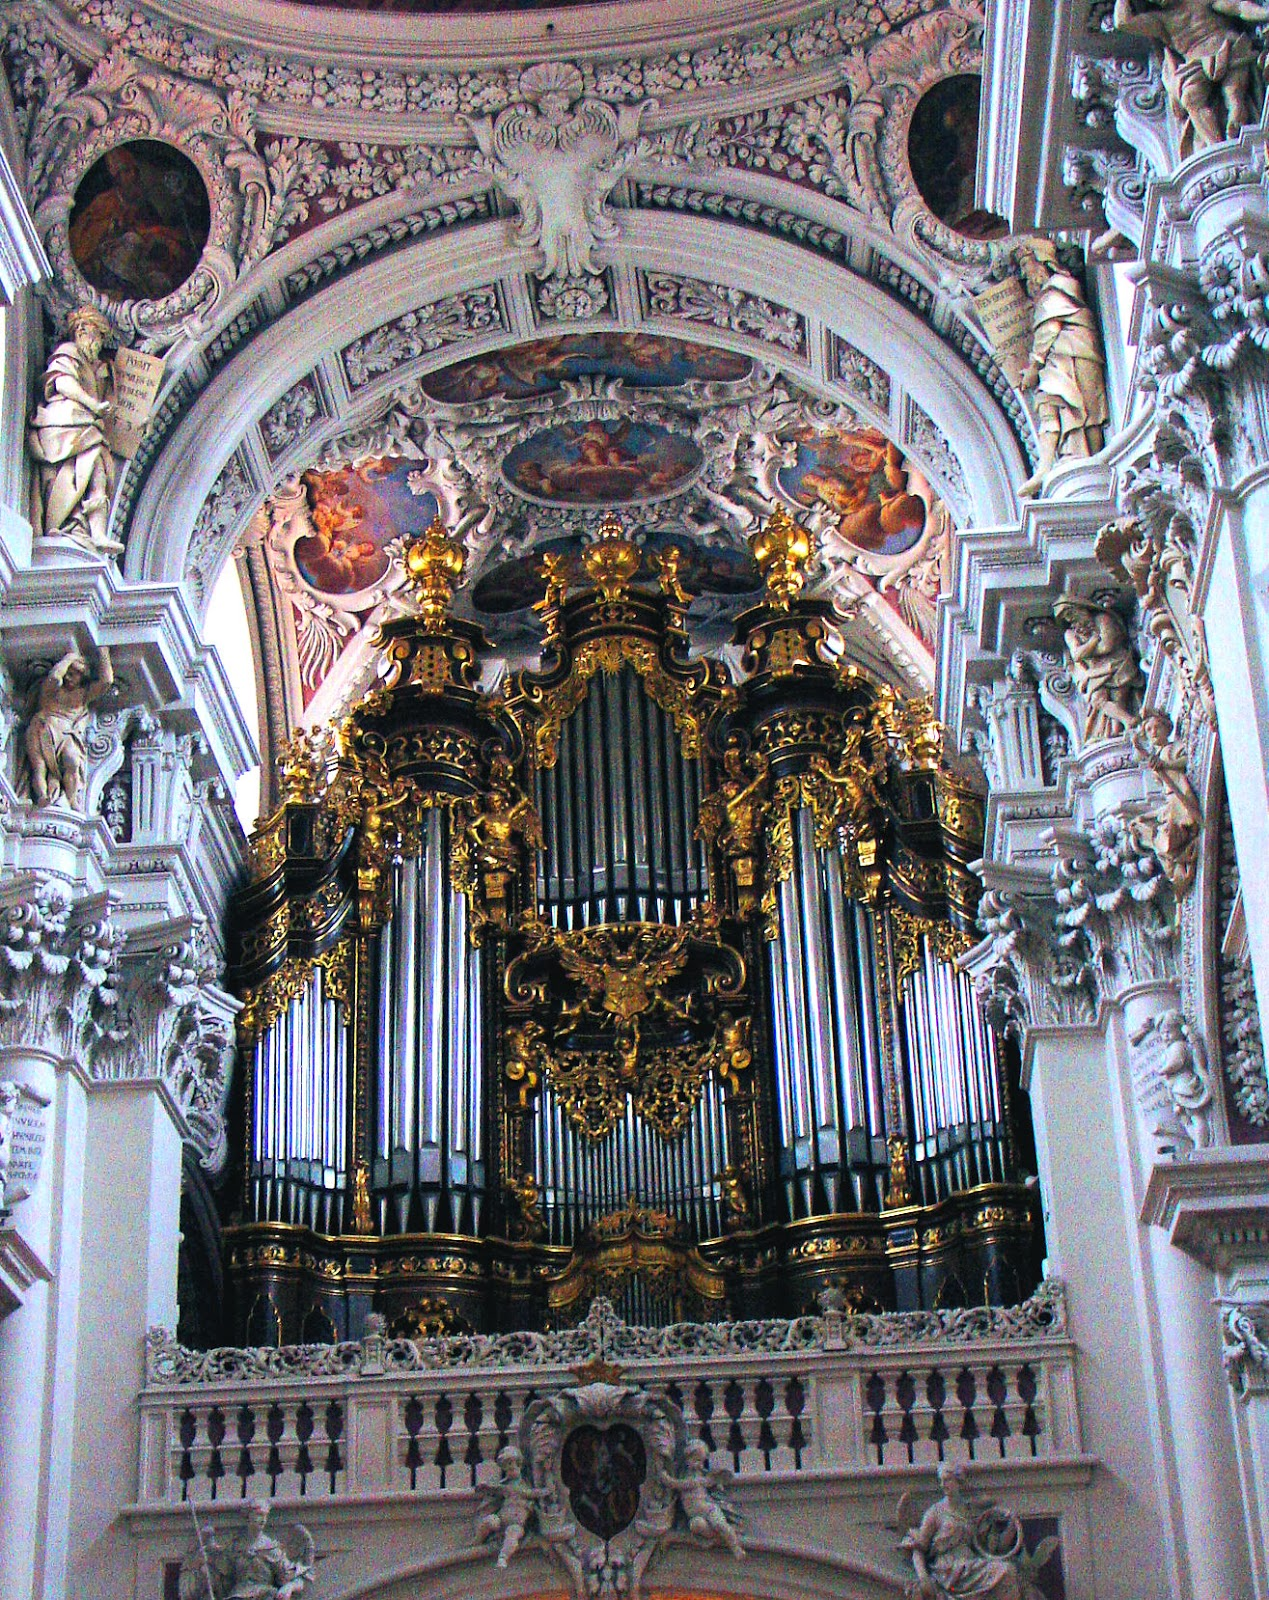 The world's largest cathedral organ awaits visitors inside St. Stephan's Cathedral in Passau, Germany.